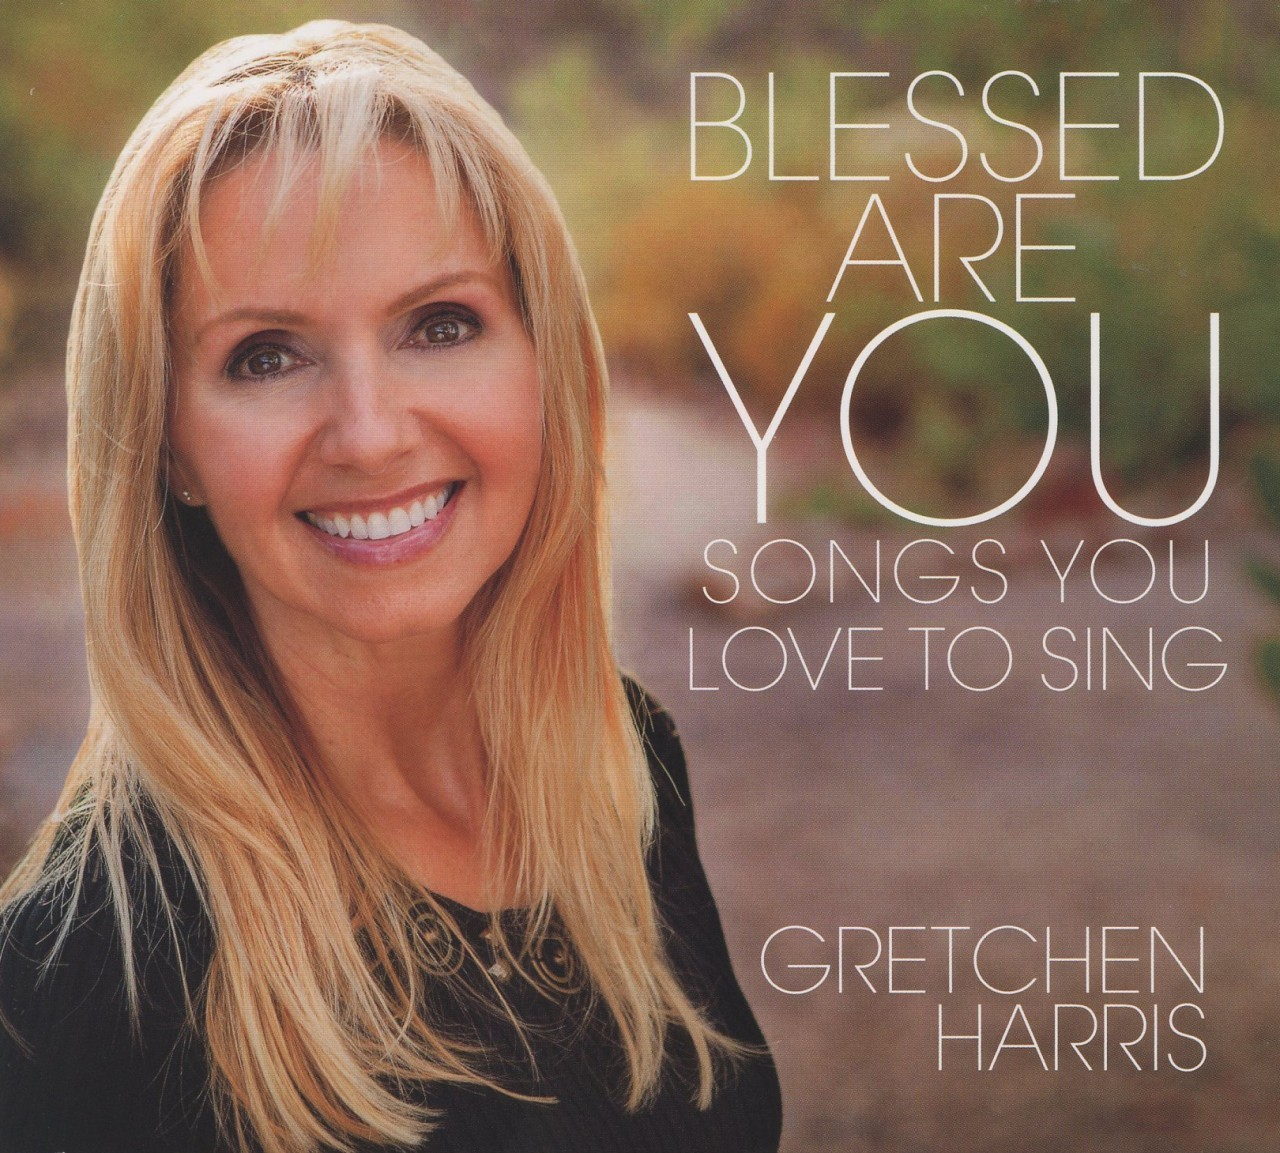 Blessed are you by gretchen harris